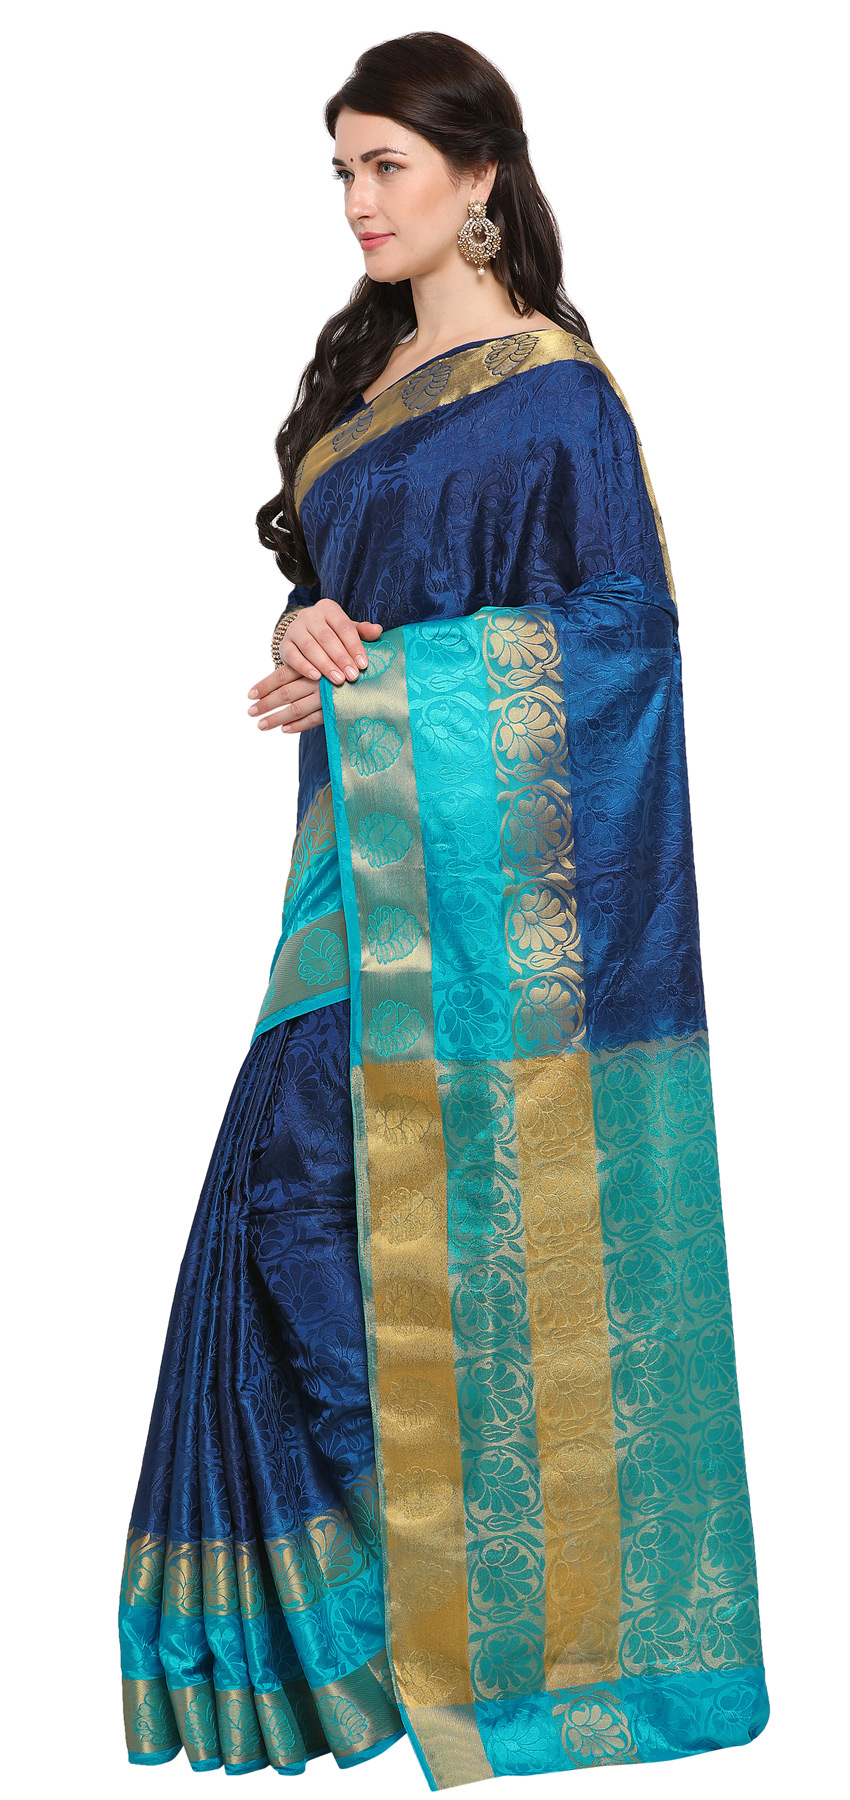 Blue Festive Wear Banarsi Cotton Silk Saree